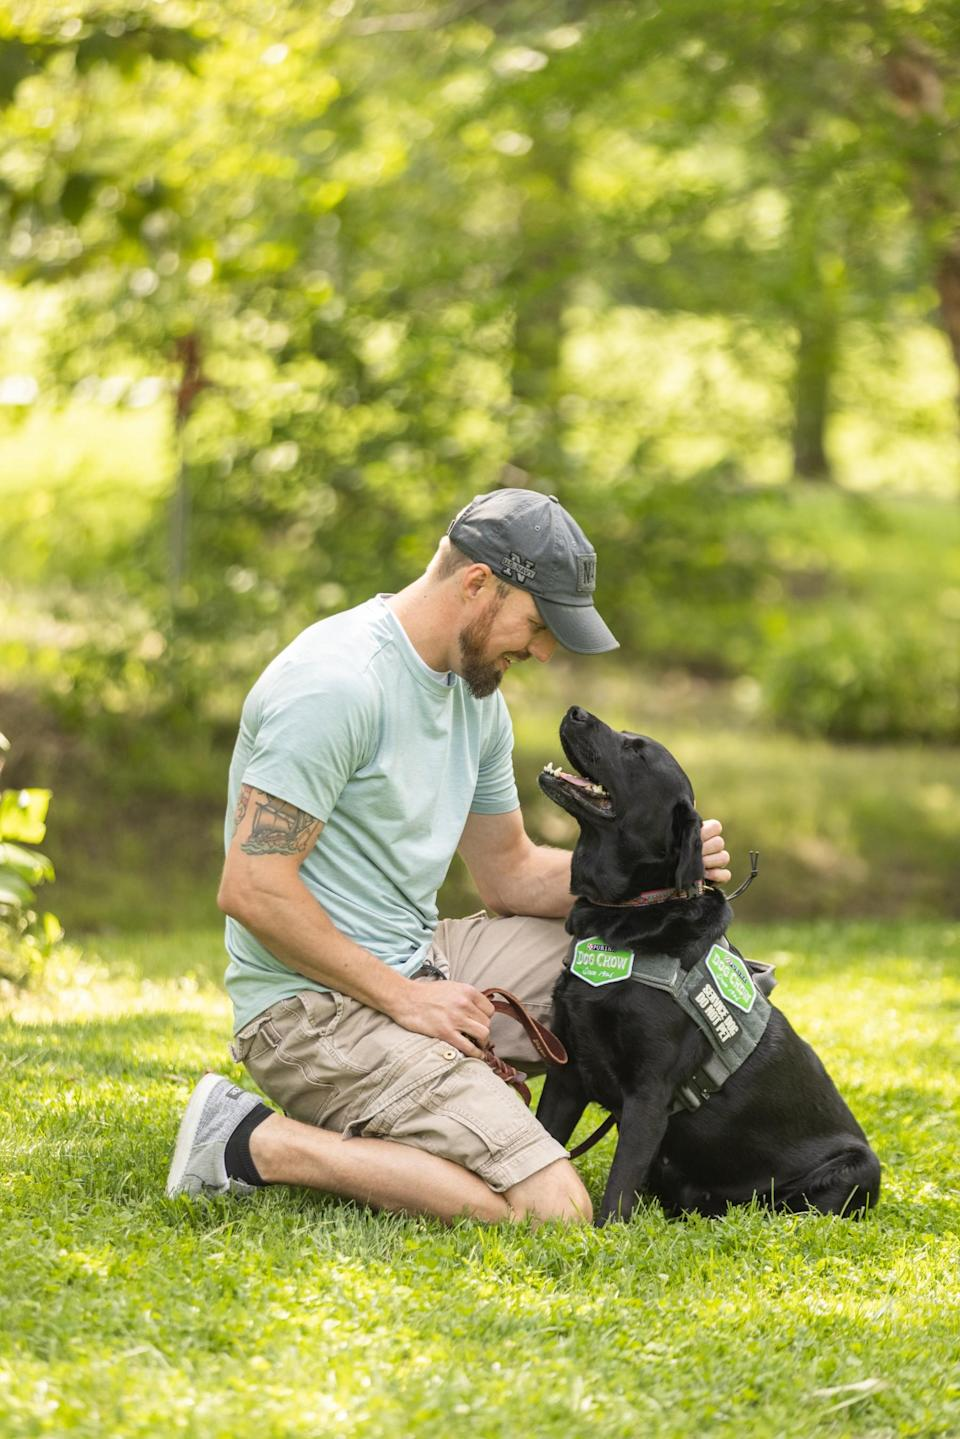 Military veteran Andy and his service dog Thanos participate in the fourth annual Dog Chow Service Dog Salute campaign